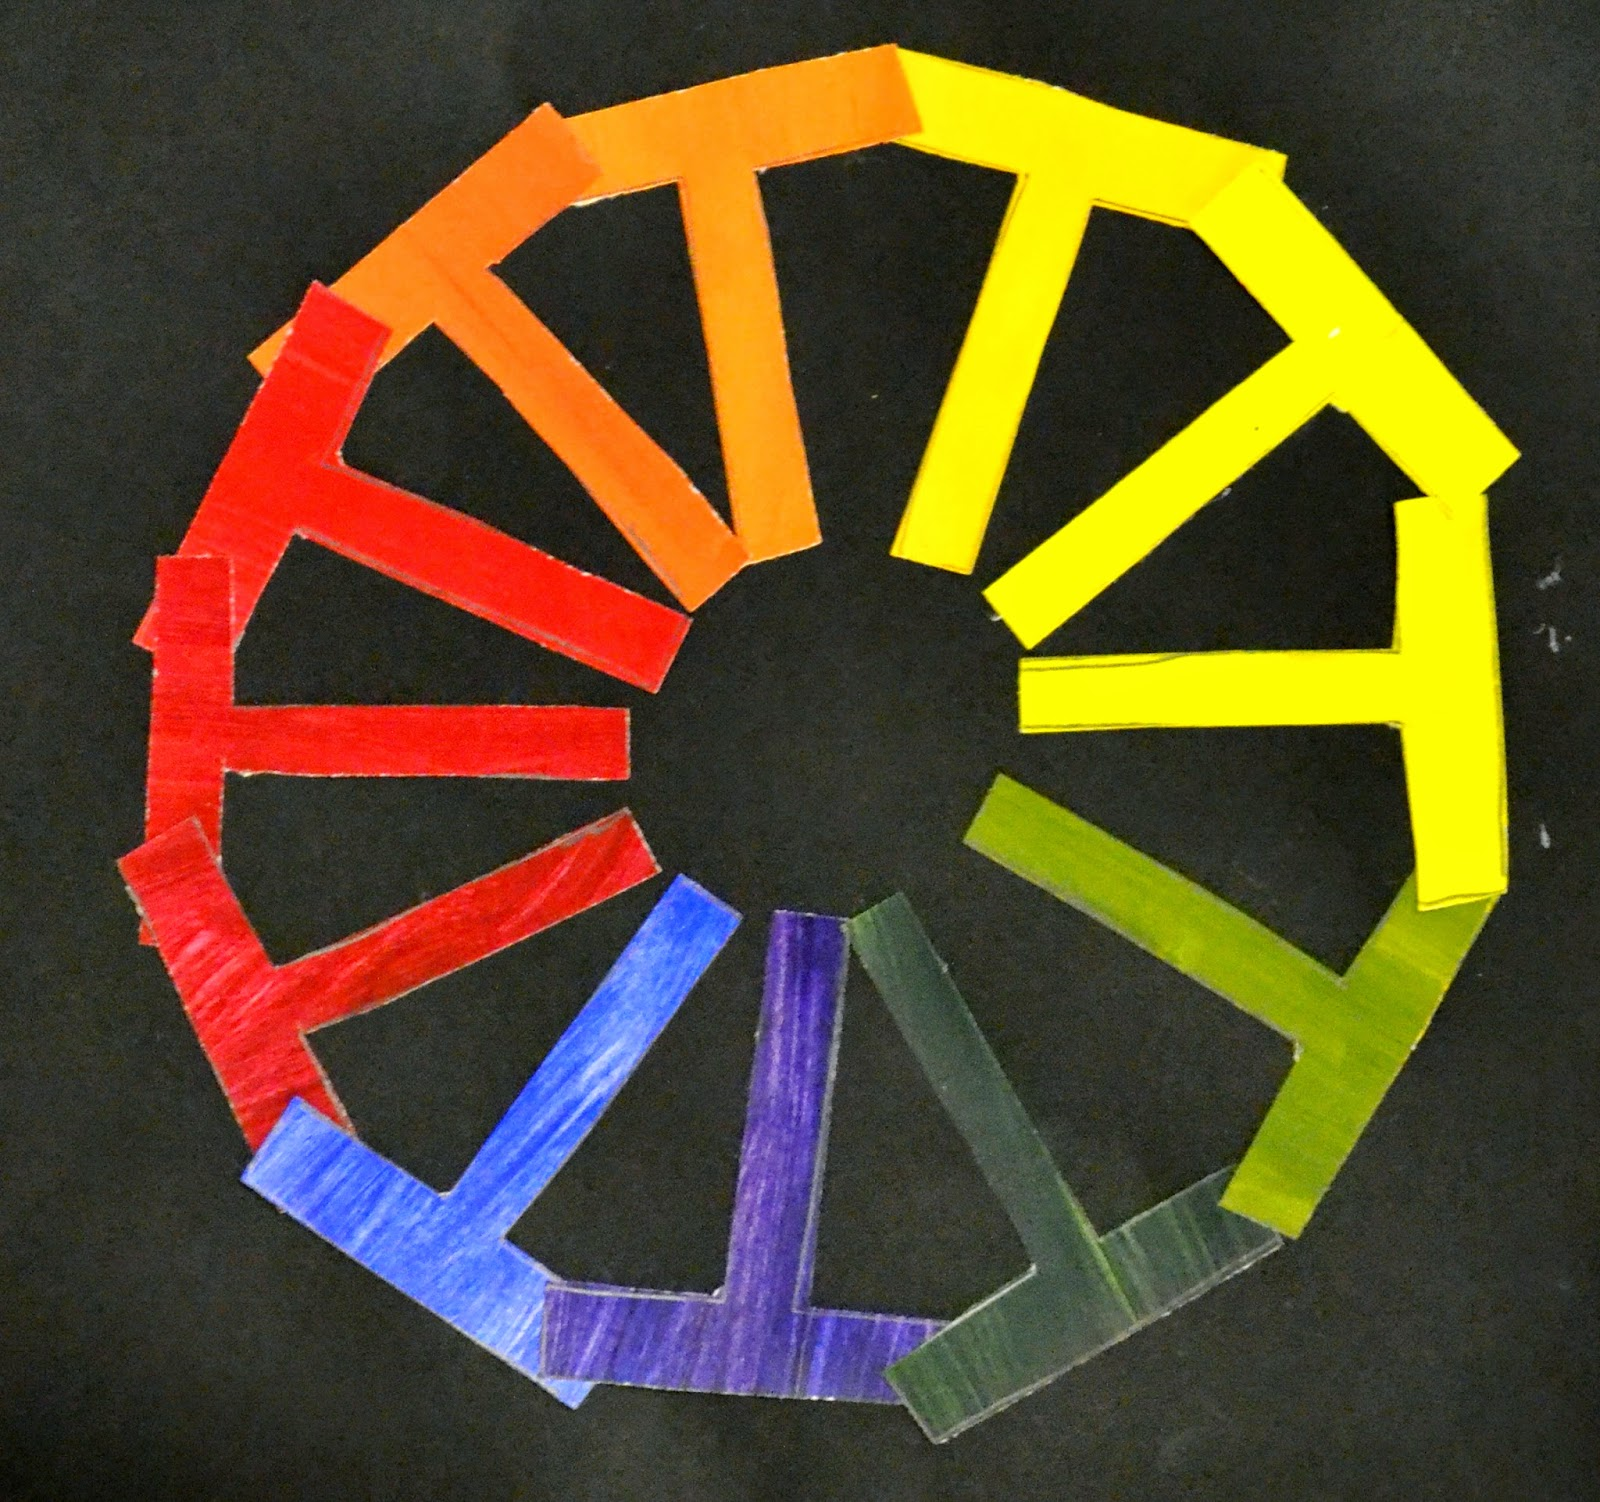 7th grade creative color wheels lessons from the k 12. Black Bedroom Furniture Sets. Home Design Ideas